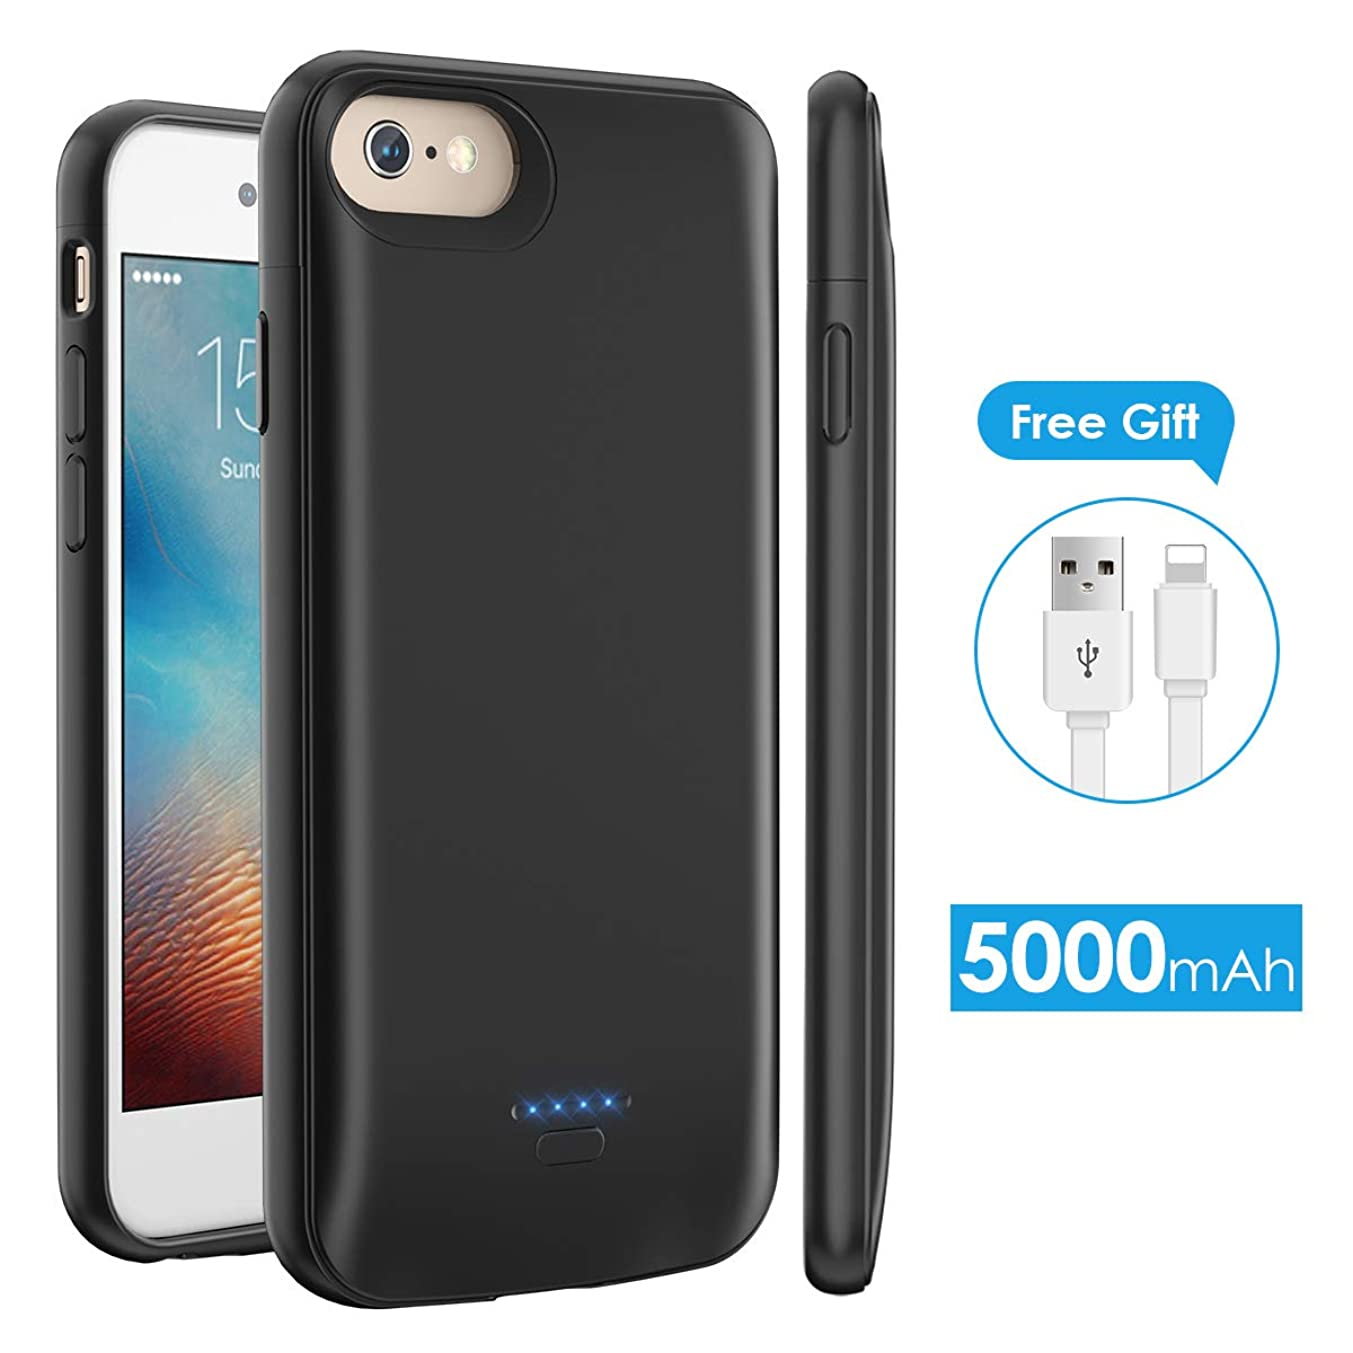 iPhone 6 6s Battery Case 5000mAh, licheers Portable Enhance Protective Charging Case for iPhone 6/6s/7/8(4.7 inch) Extended Battery Charger Case (Black)